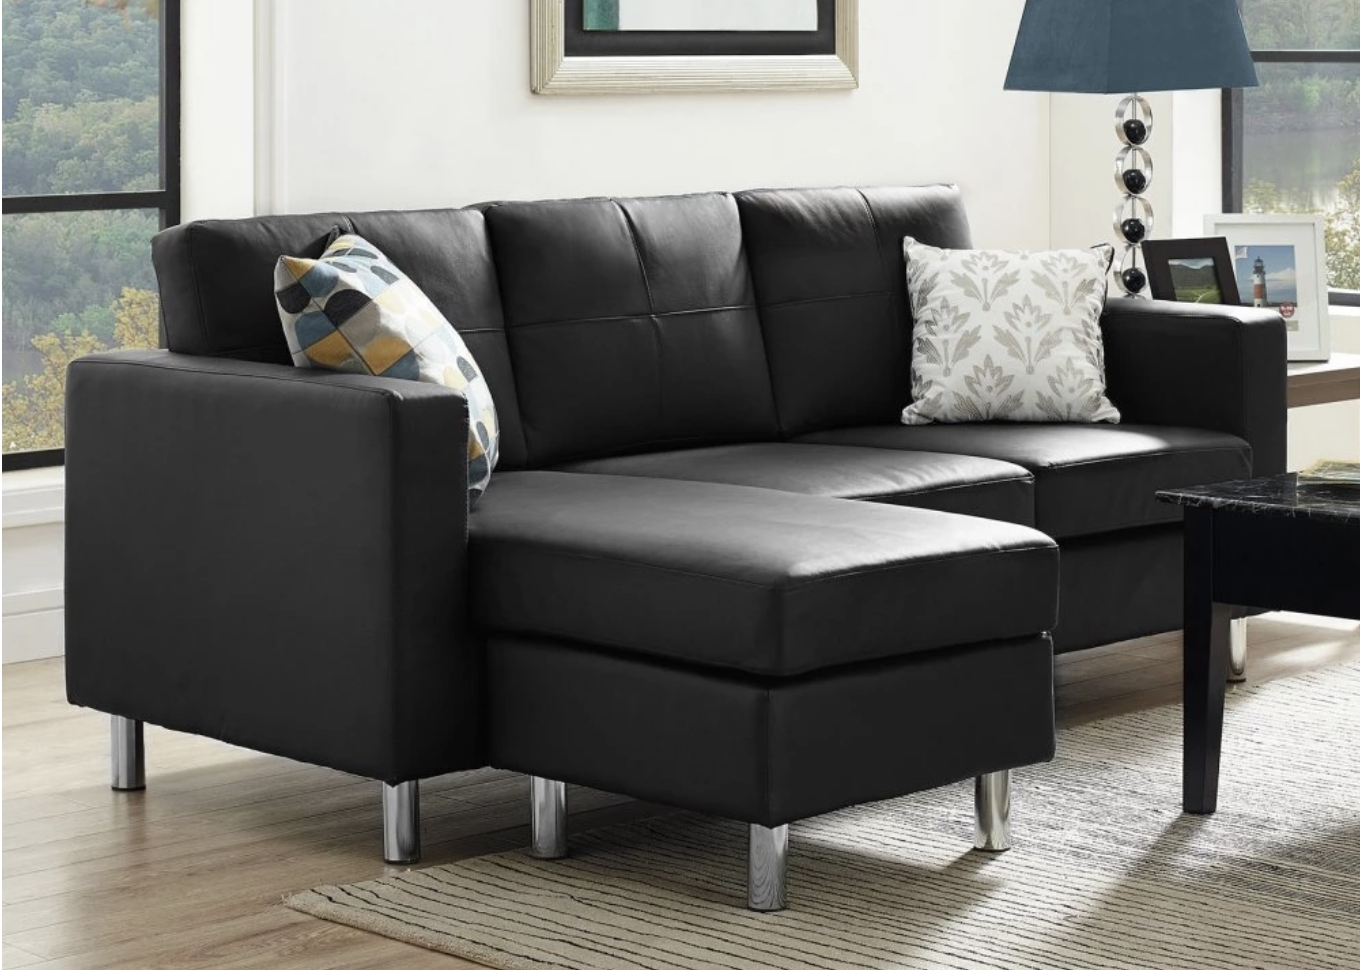 75 Modern Sectional Sofas For Small Spaces (2018) in Small Spaces Sectional Sofas (Image 1 of 10)